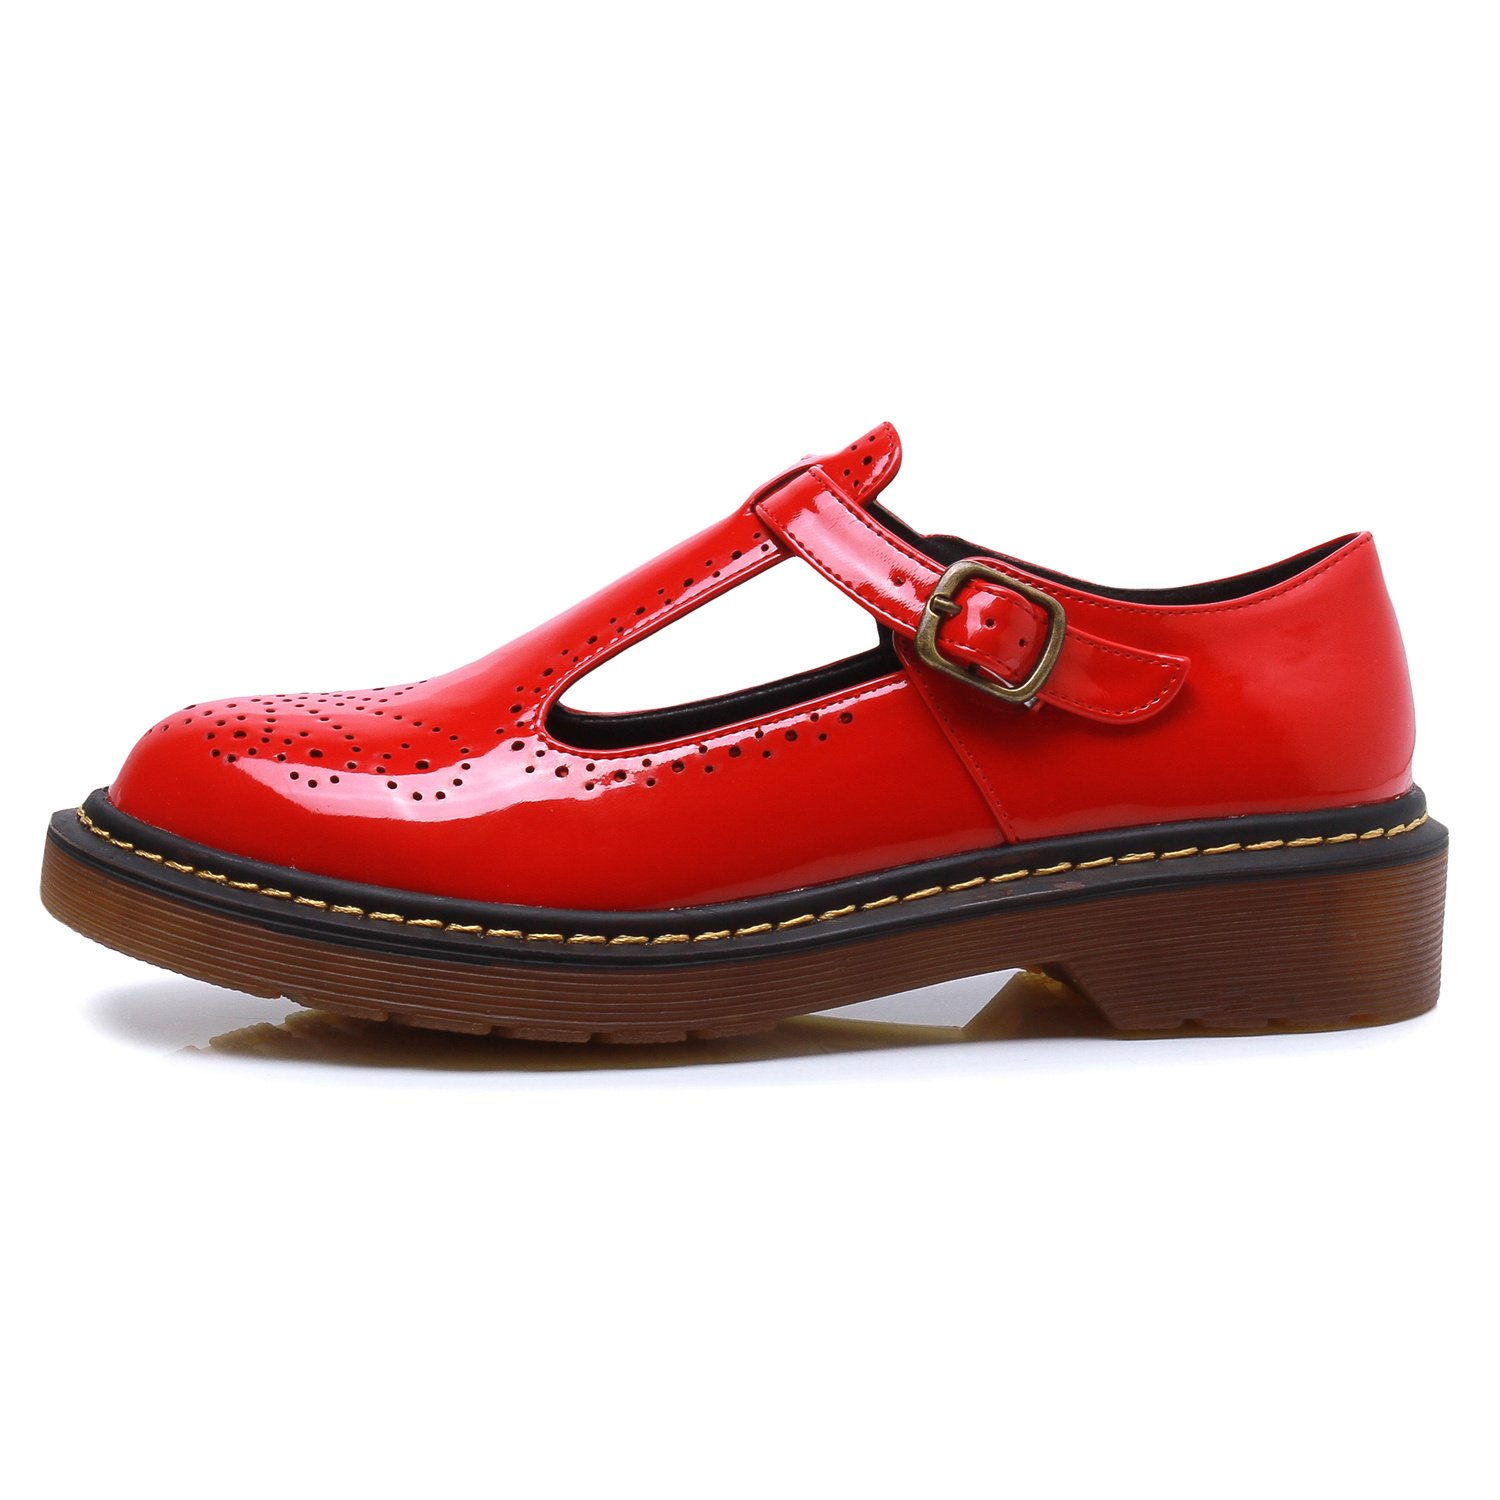 Flats amp; Classic Zapatos Mary Smilun S T Lady Iexcl; Macr; Jane PwznzZBv